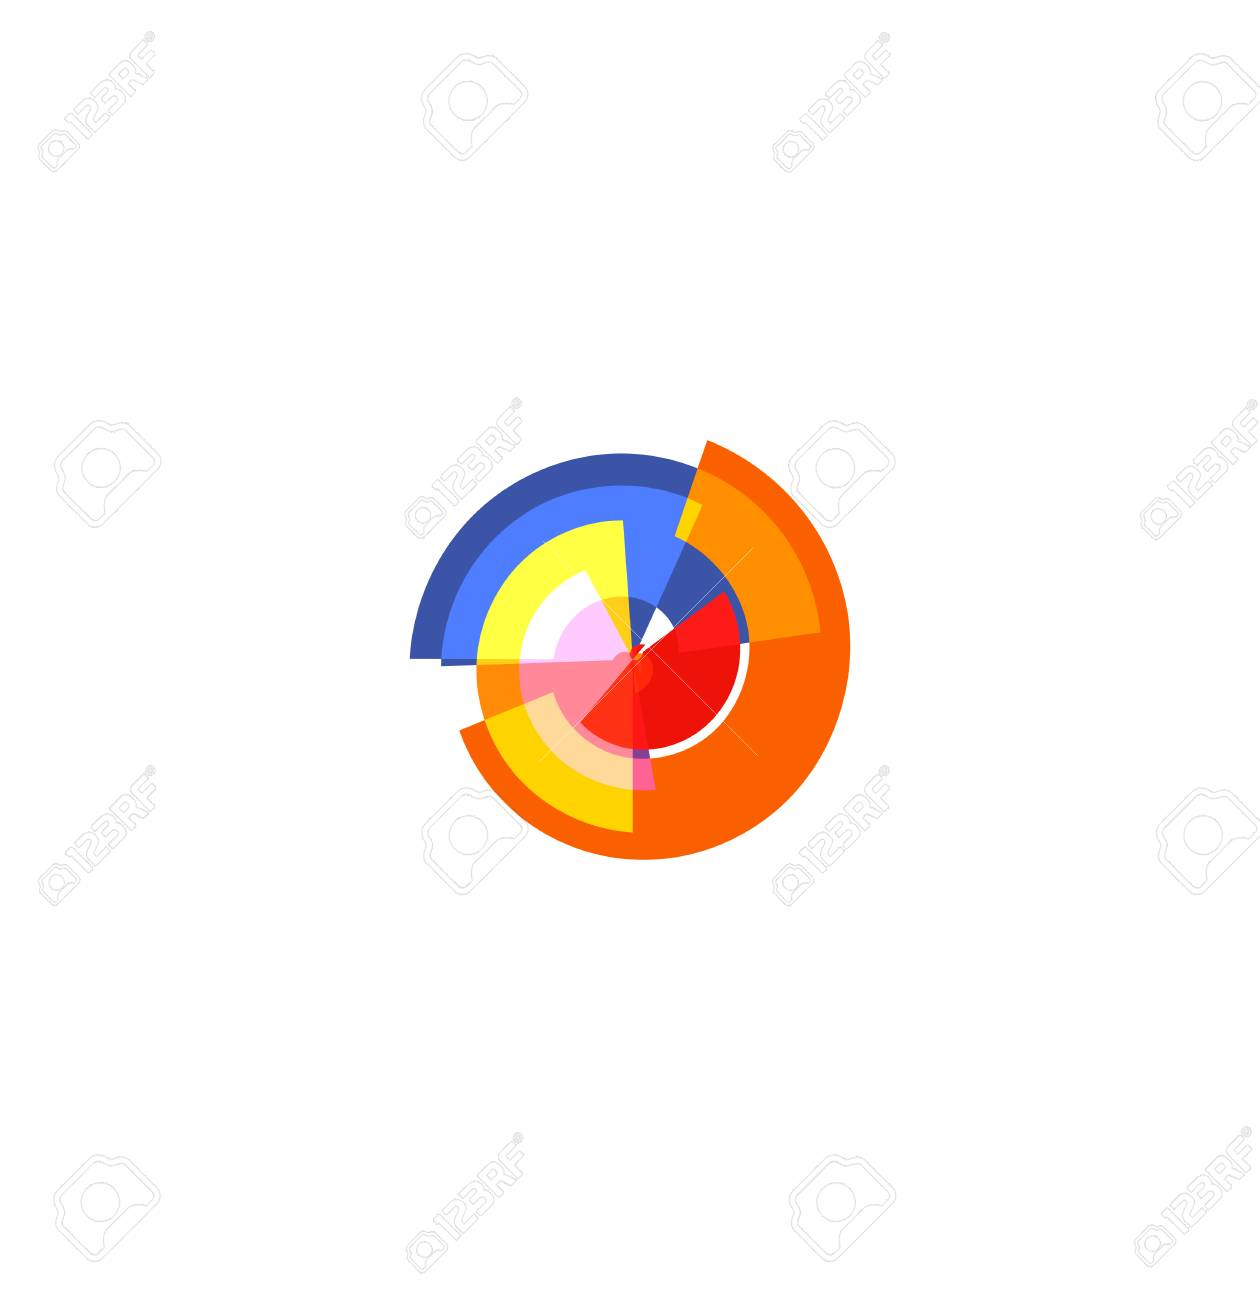 Isolated Abstract Colorful Pie Chart Logo Round Shape Diagram Logotype Infographic Element Vector Illustration